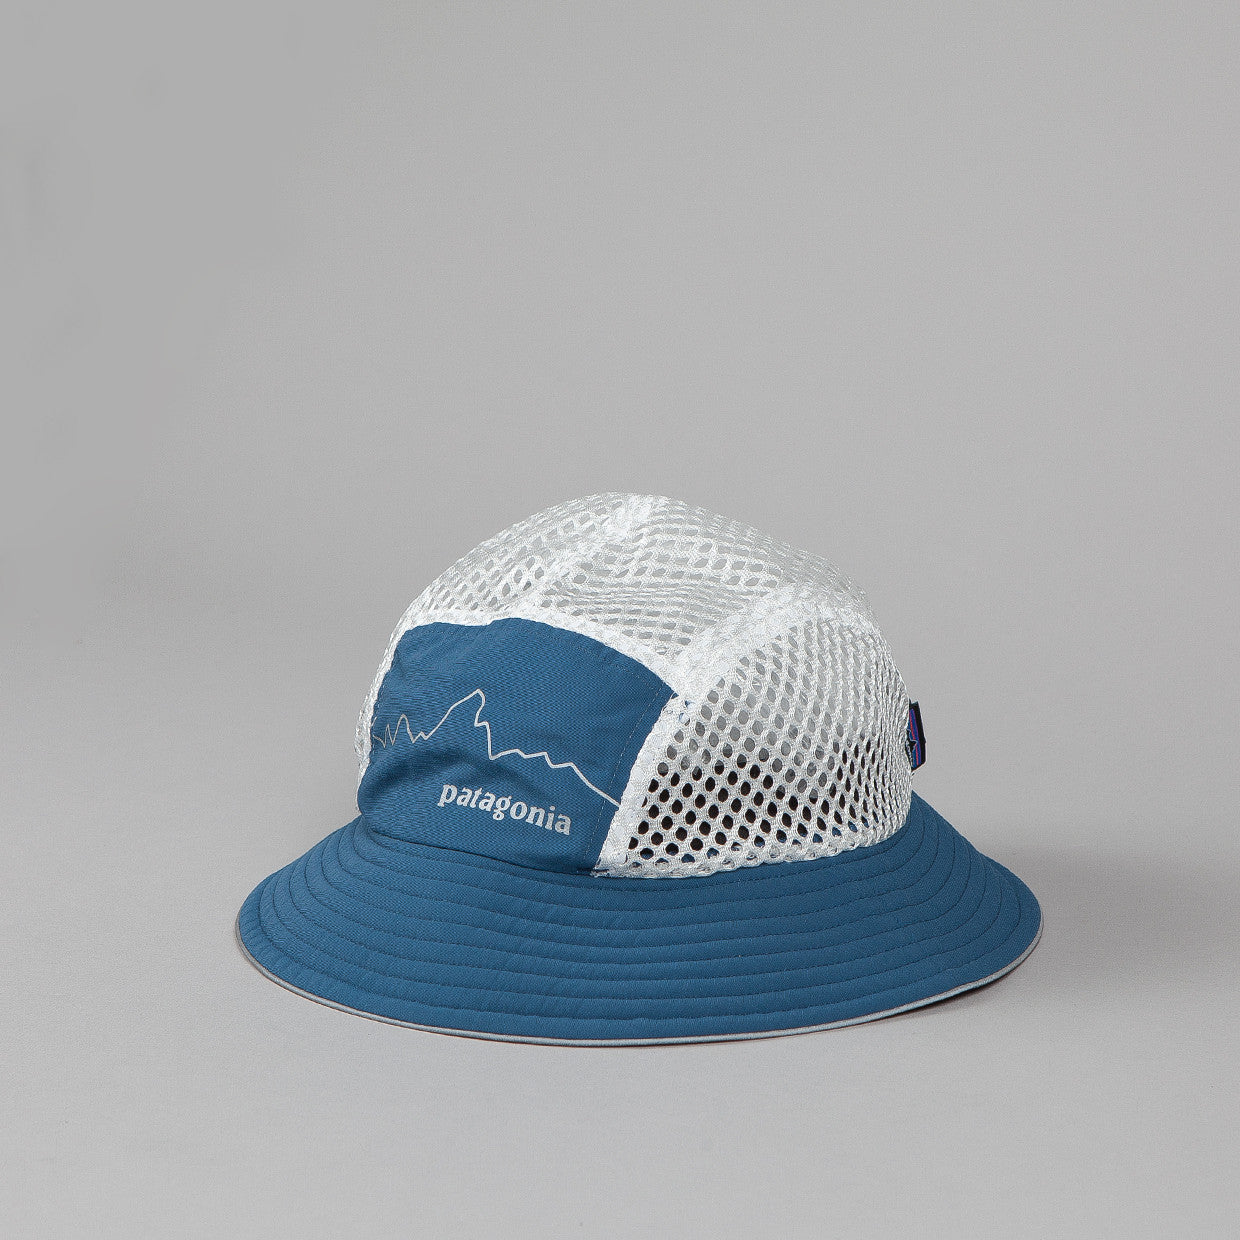 Patagonia Duckbill Bucket Hat Glass Blue